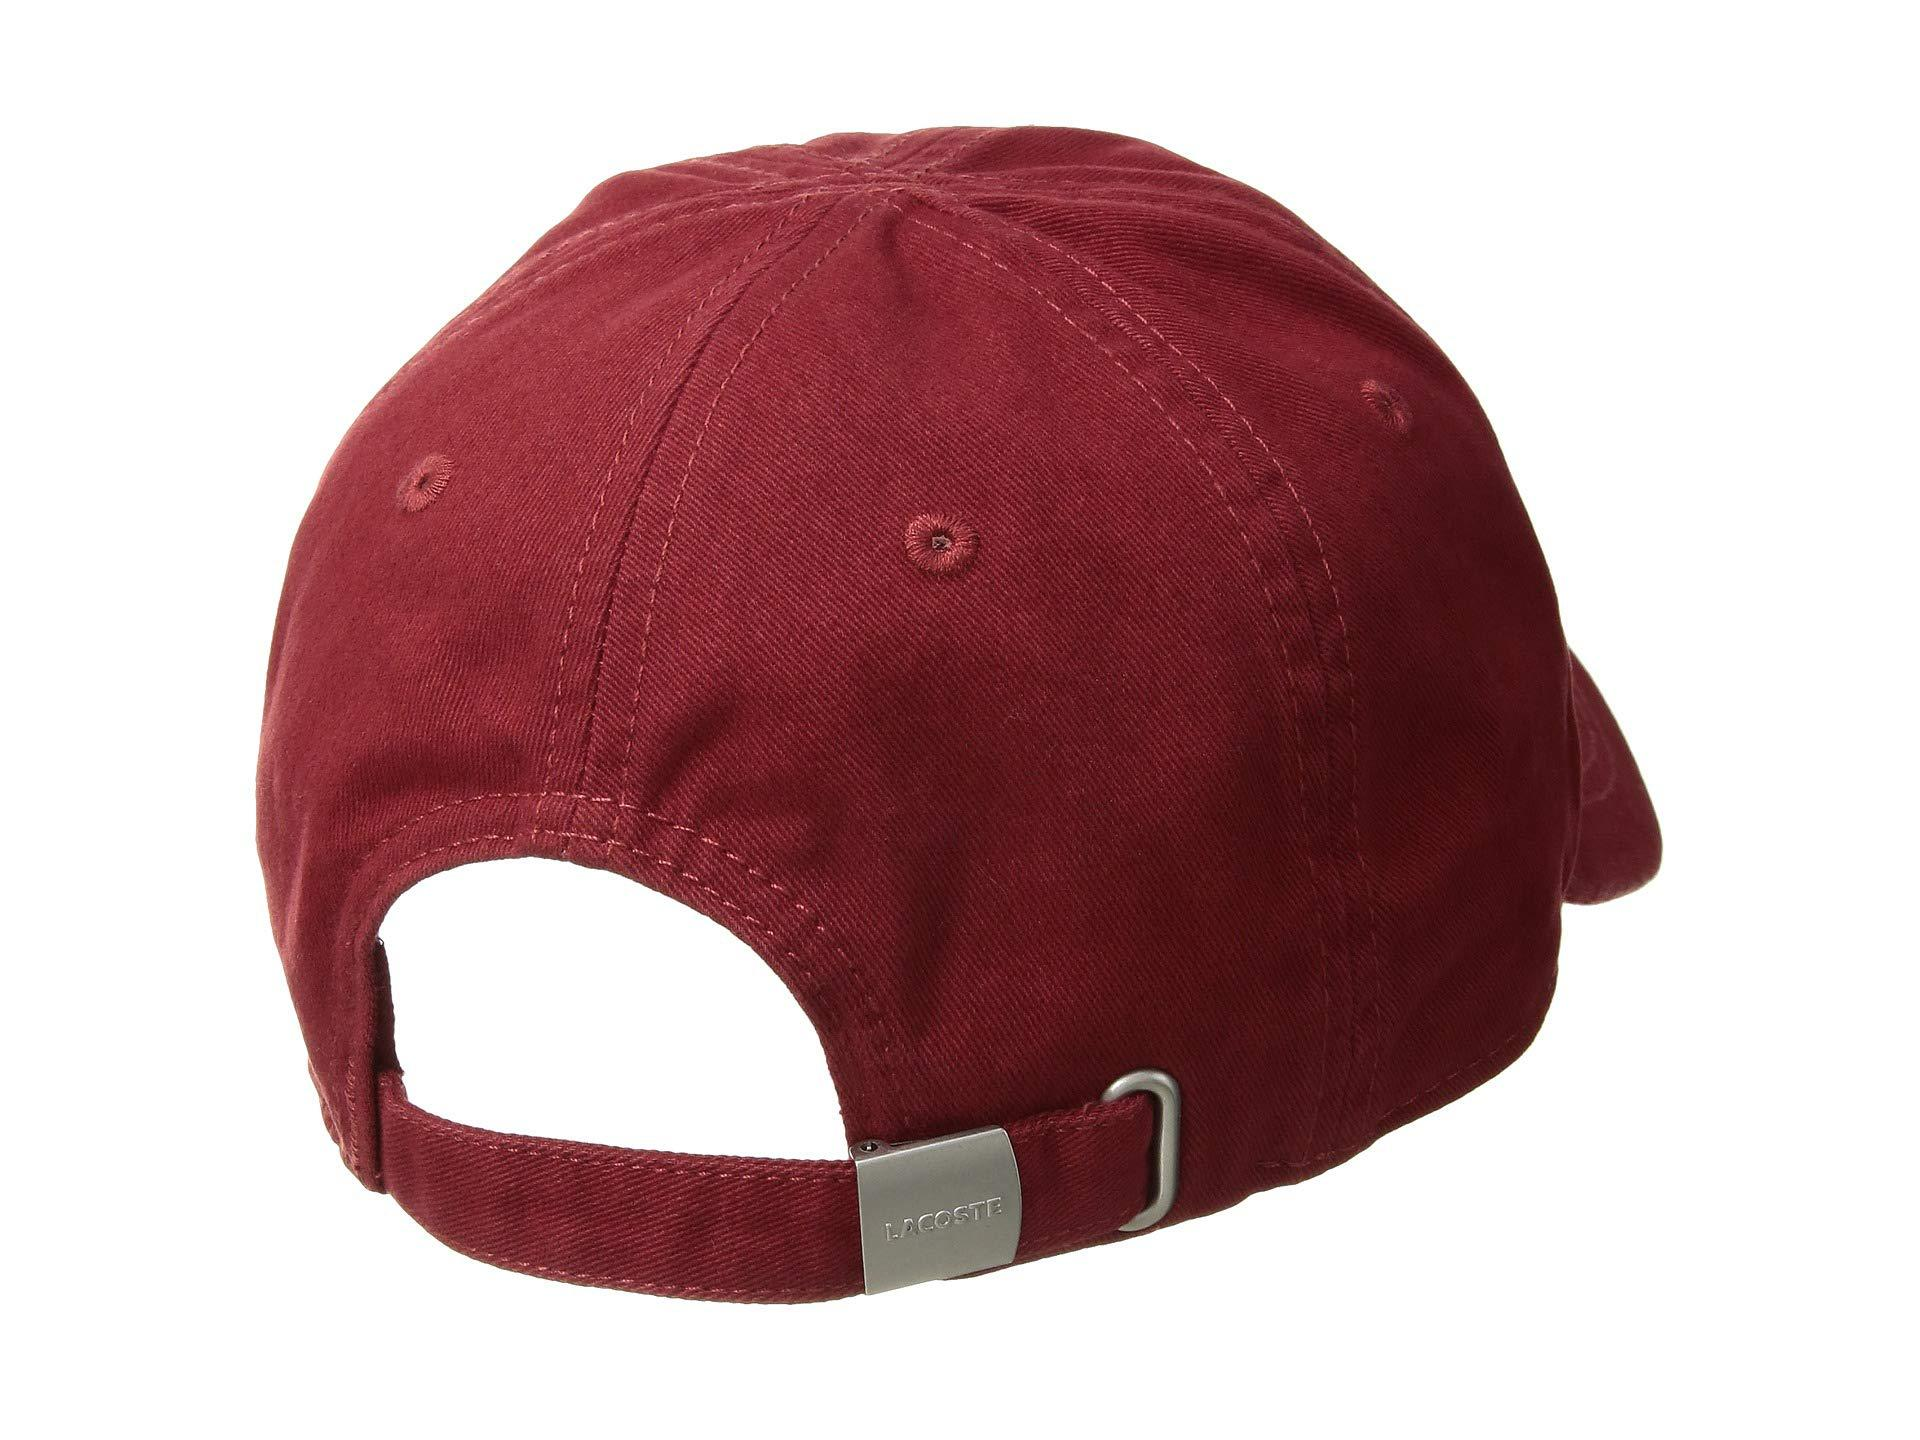 2ae713dc576 Lacoste - Red Big Croc Gabardine Cap (vertigo) Baseball Caps for Men -  Lyst. View fullscreen